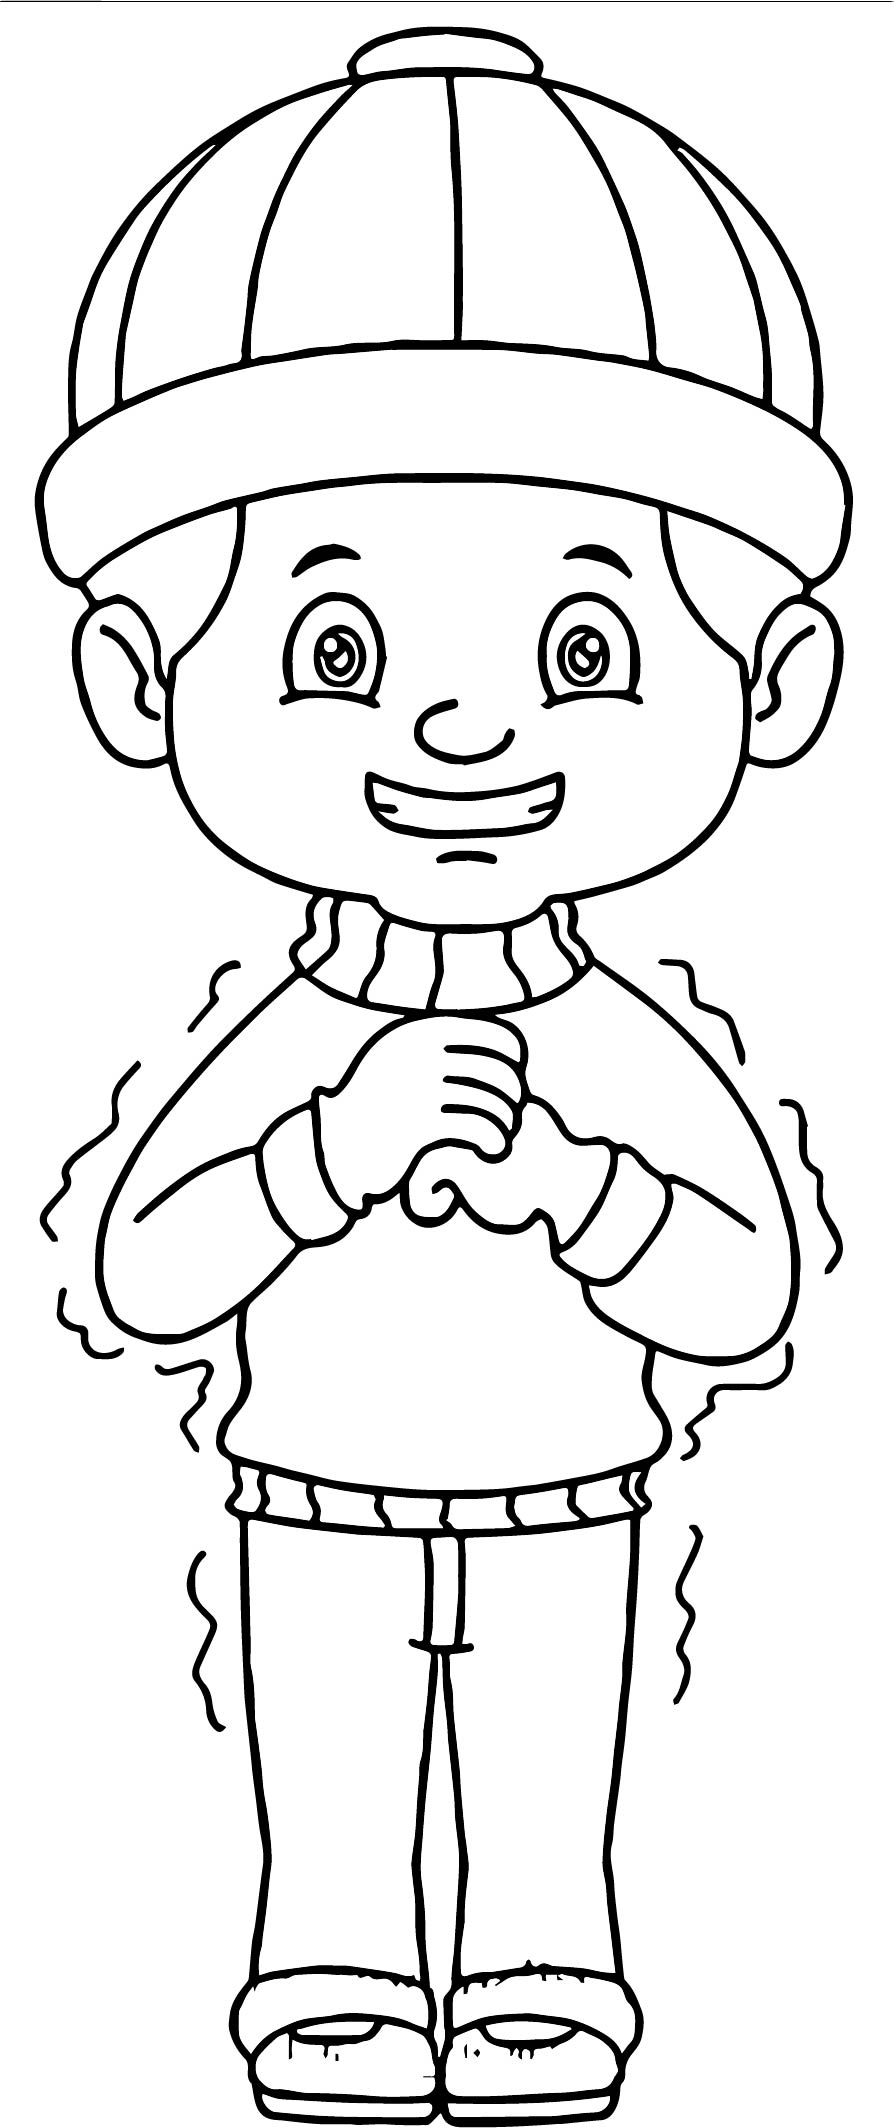 boy wearing hat gloves shivering winter coloring page wecoloringpage